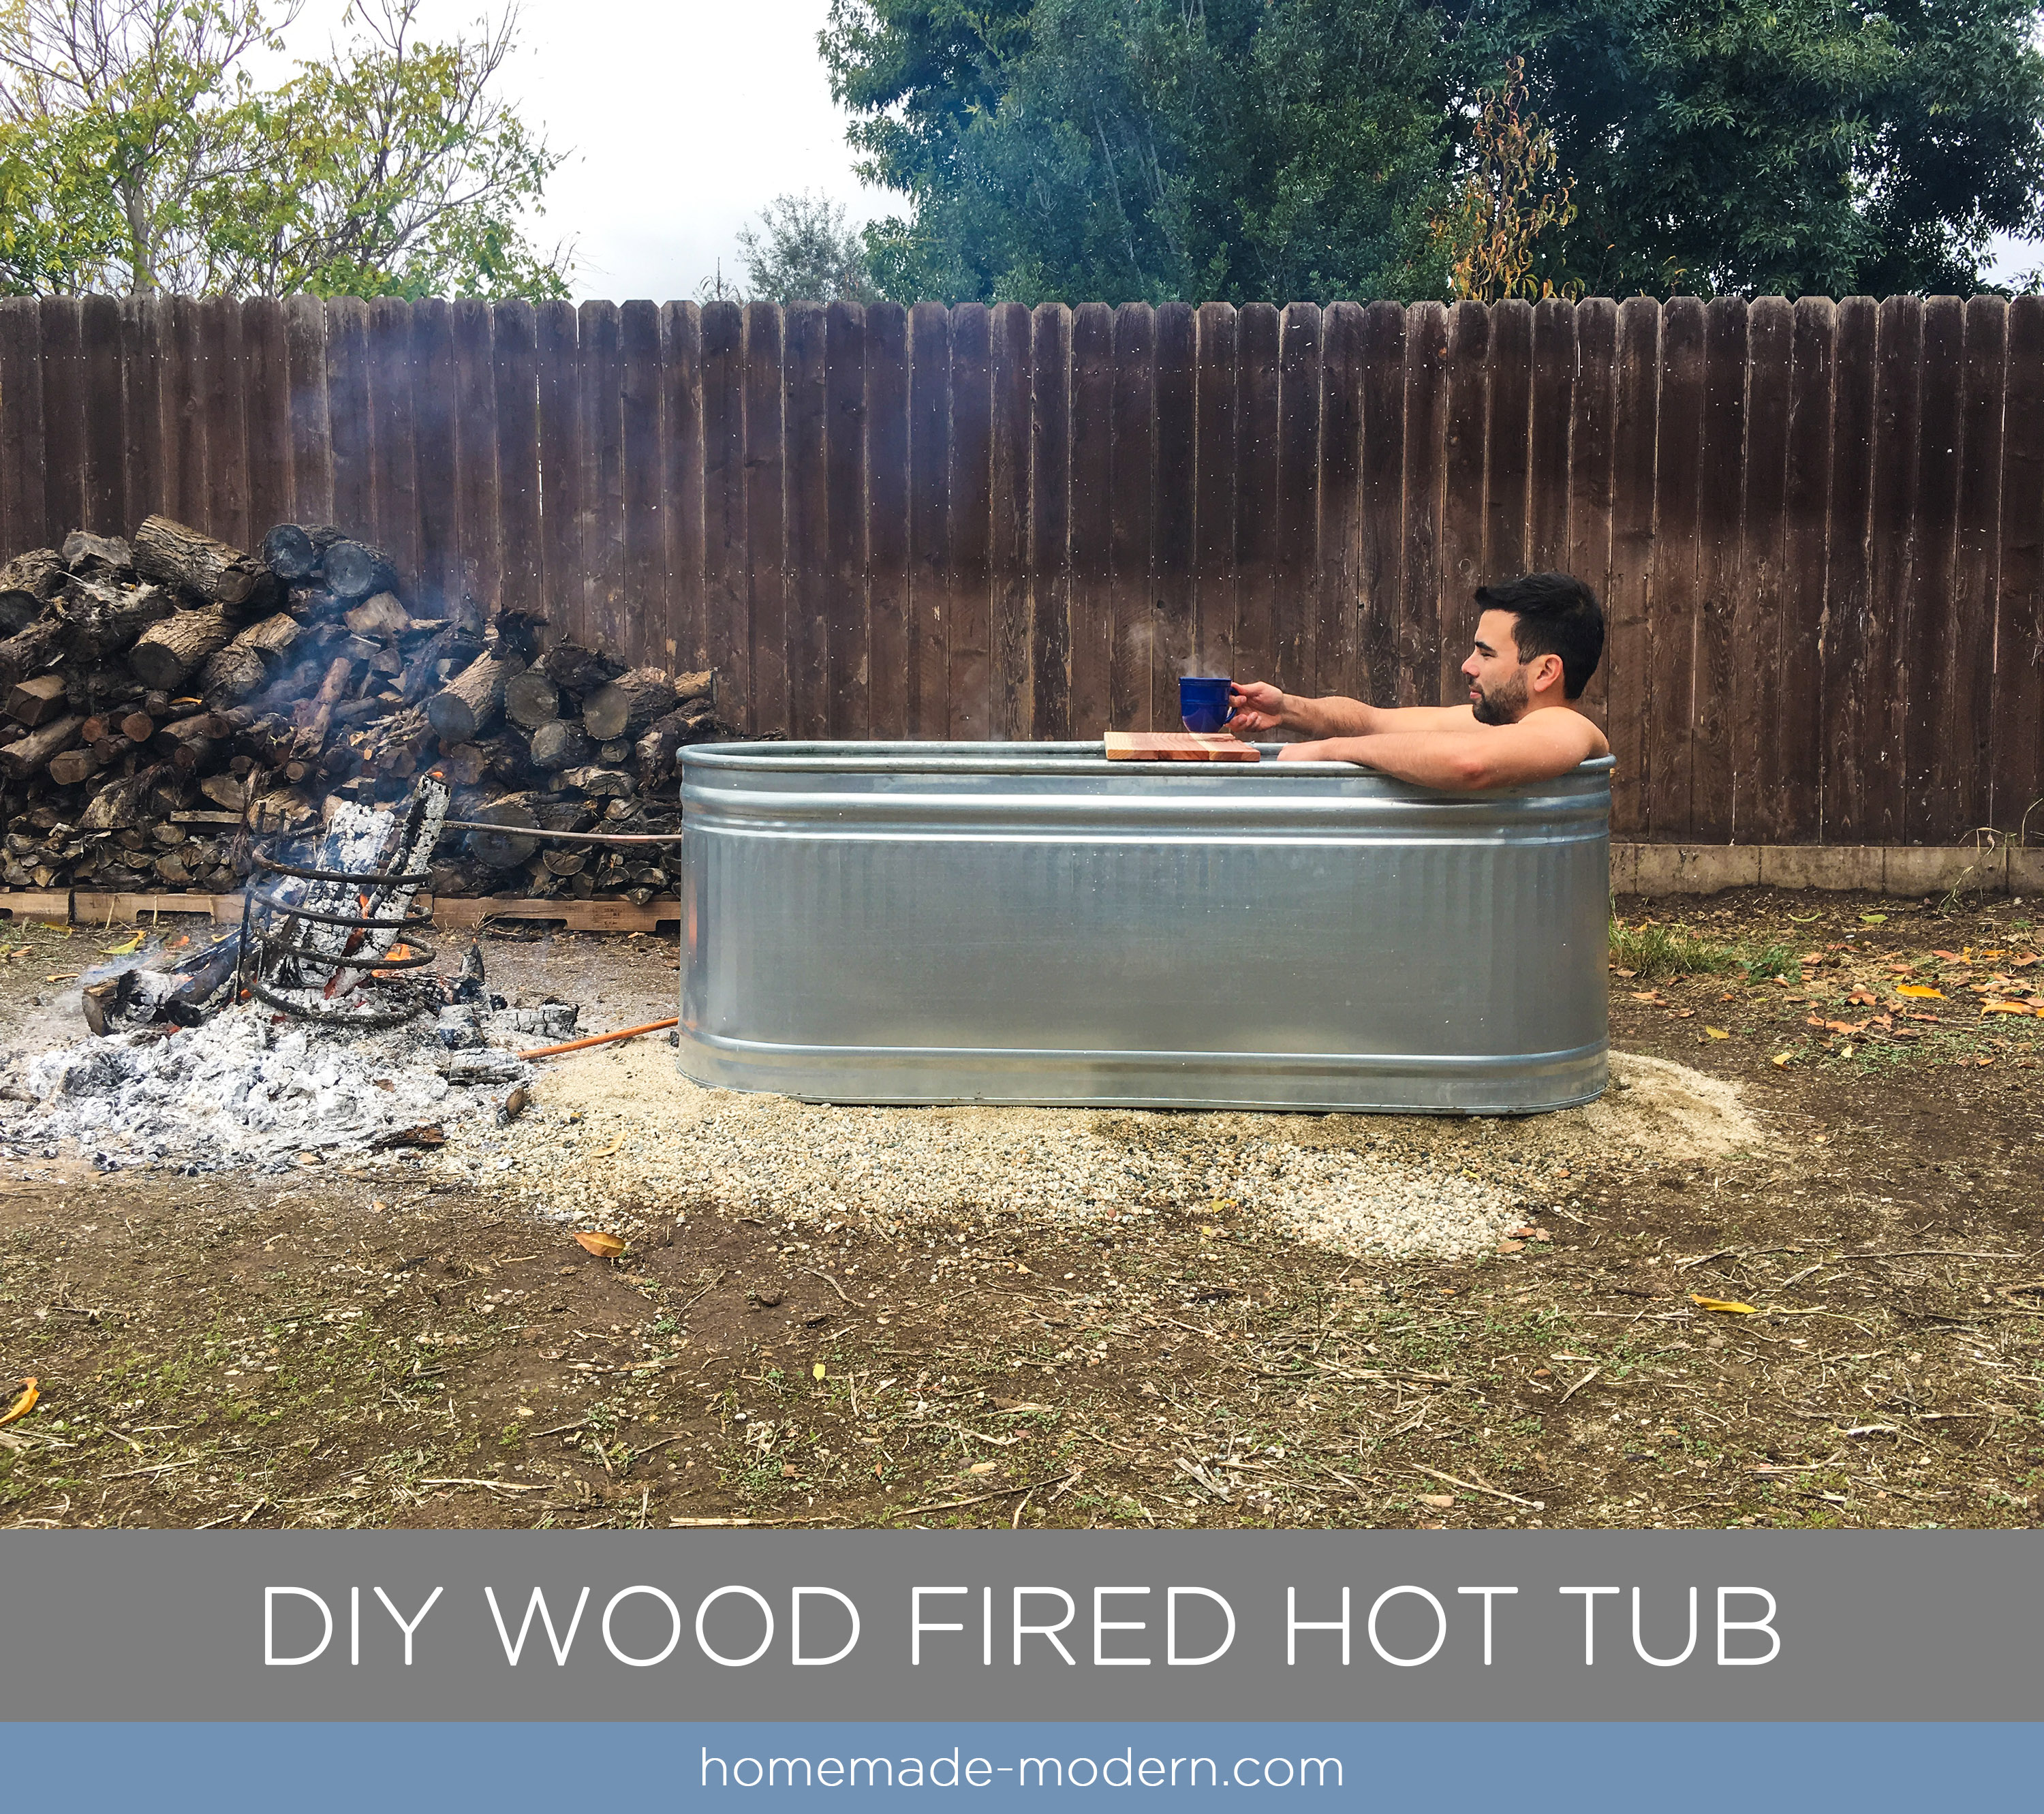 This DIY wood fired Hot Tub is made from a stock tank and copper tubing and cost less than $250. Full instructions can be found at HomeMade-Modern.com